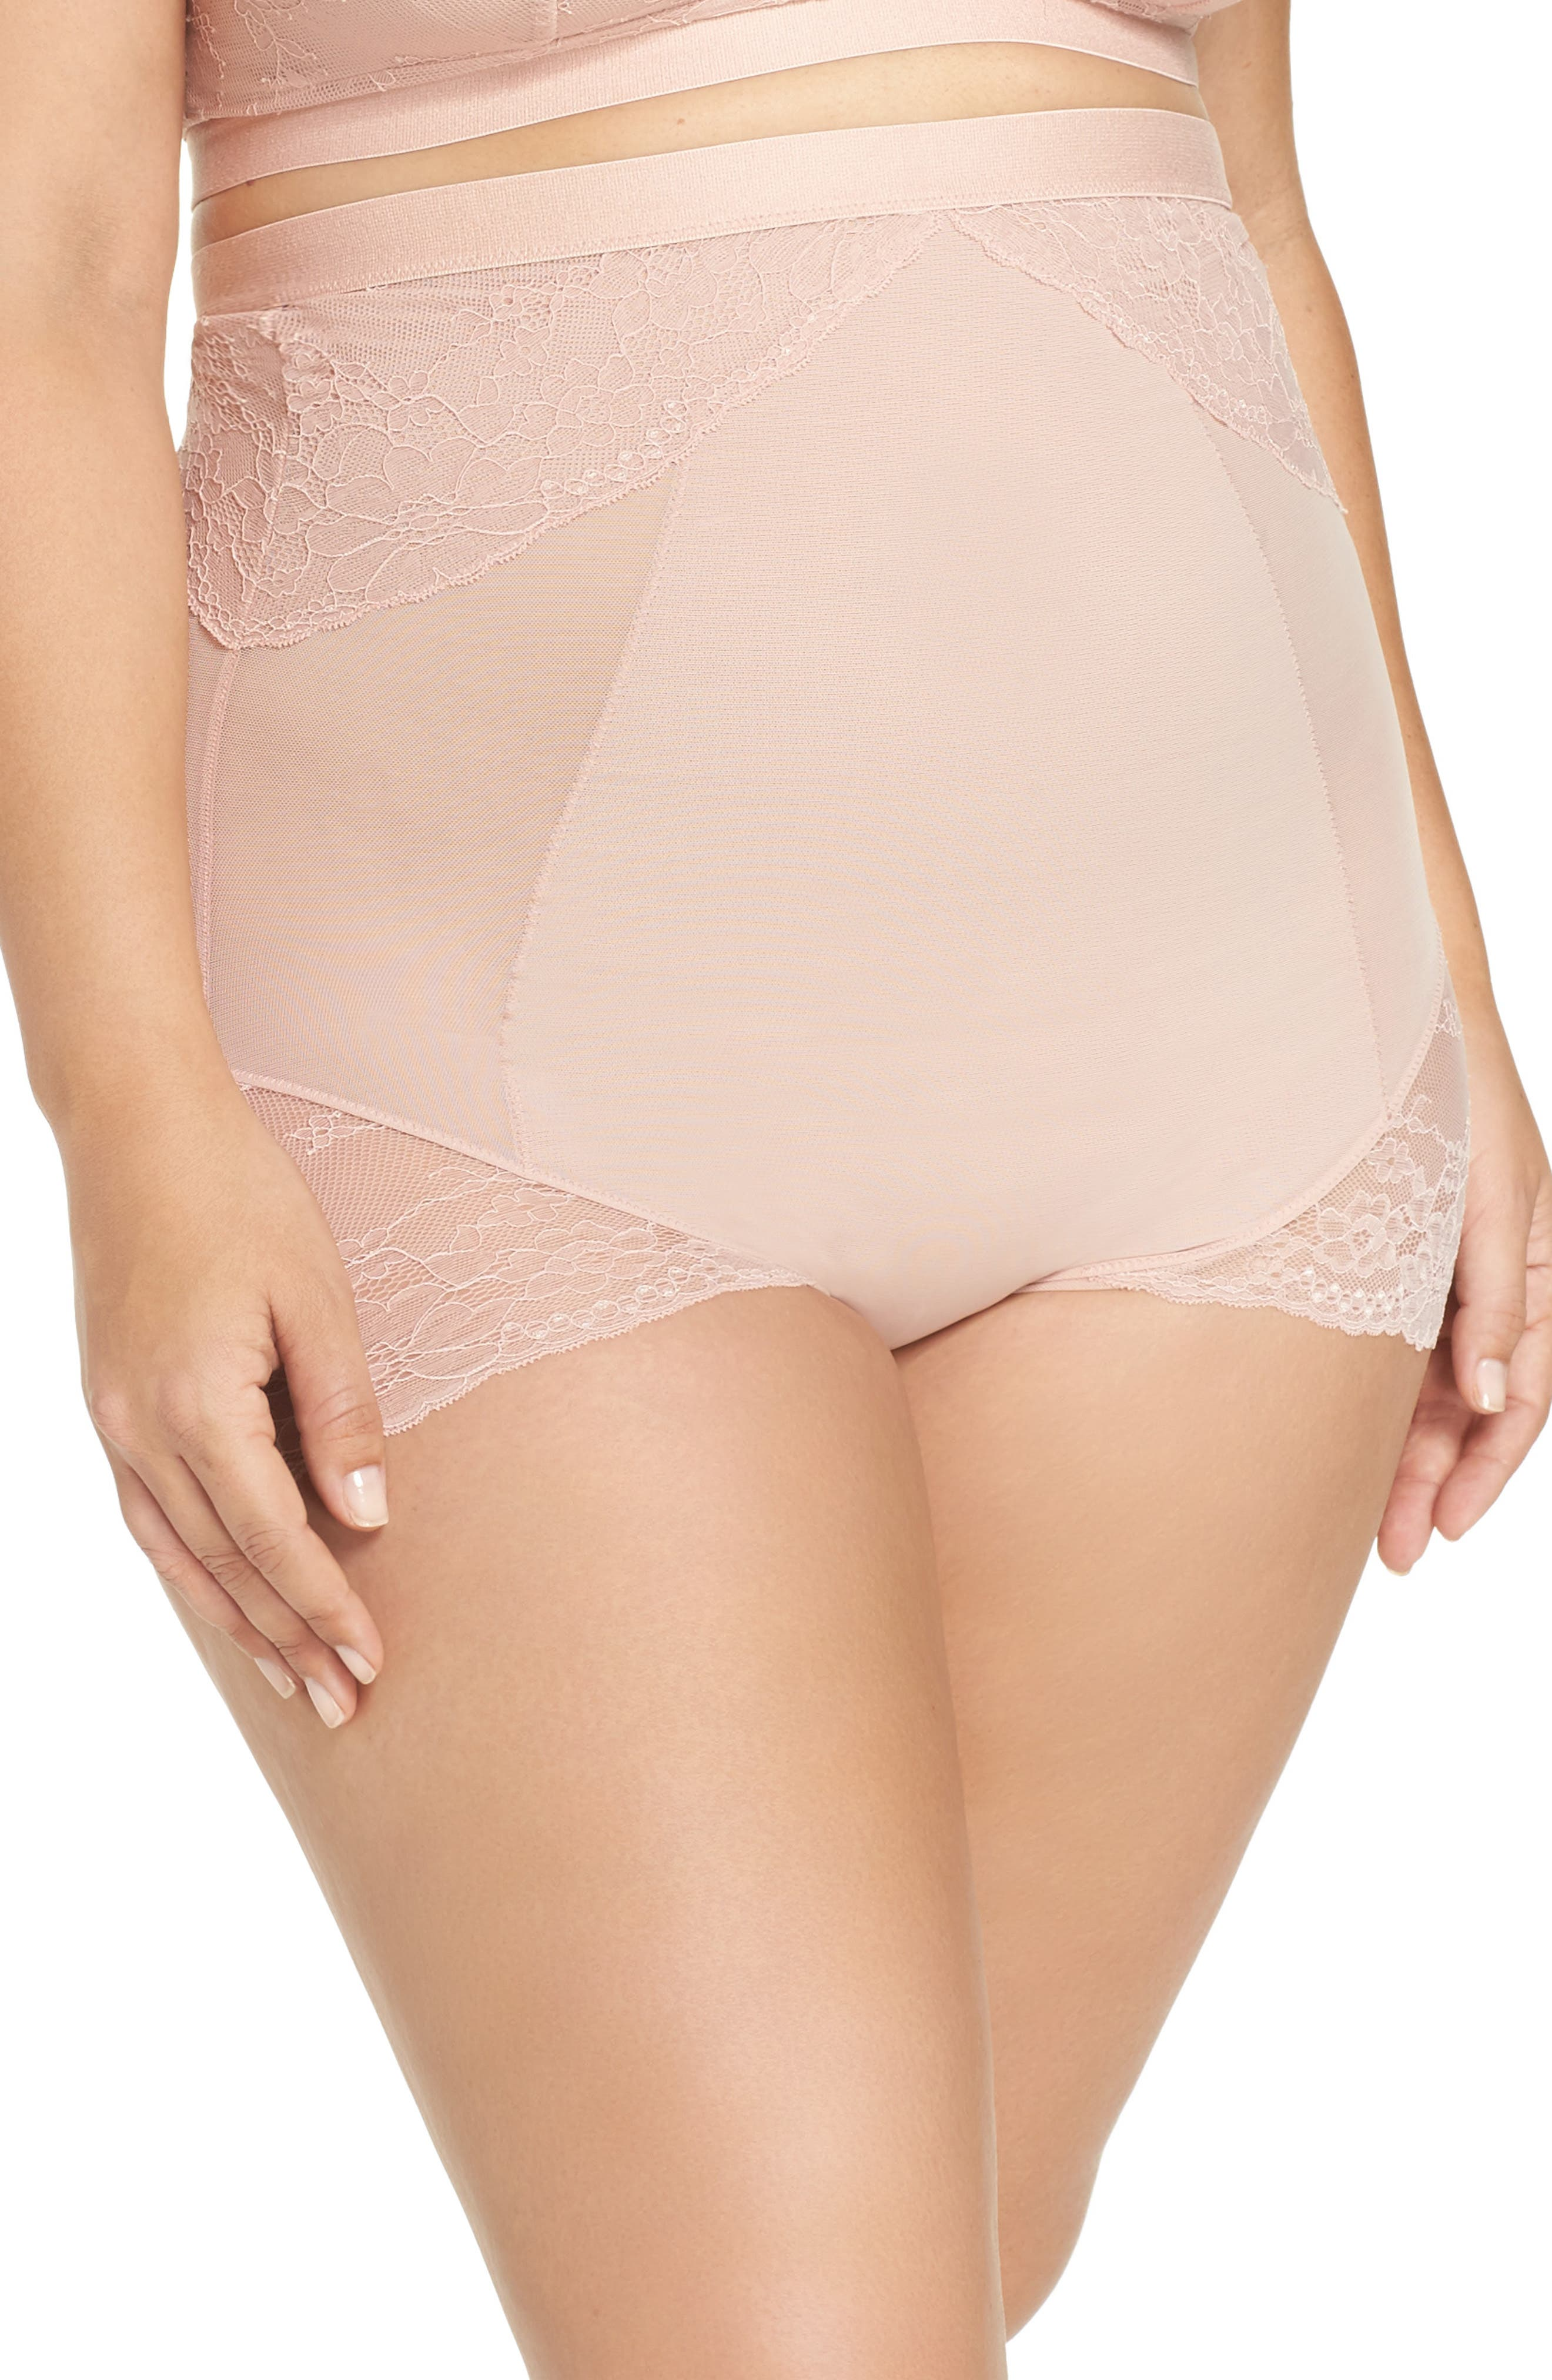 Alternate Image 1 Selected - SPANX® Spotlight On Lace High Waist Briefs (Plus Size)